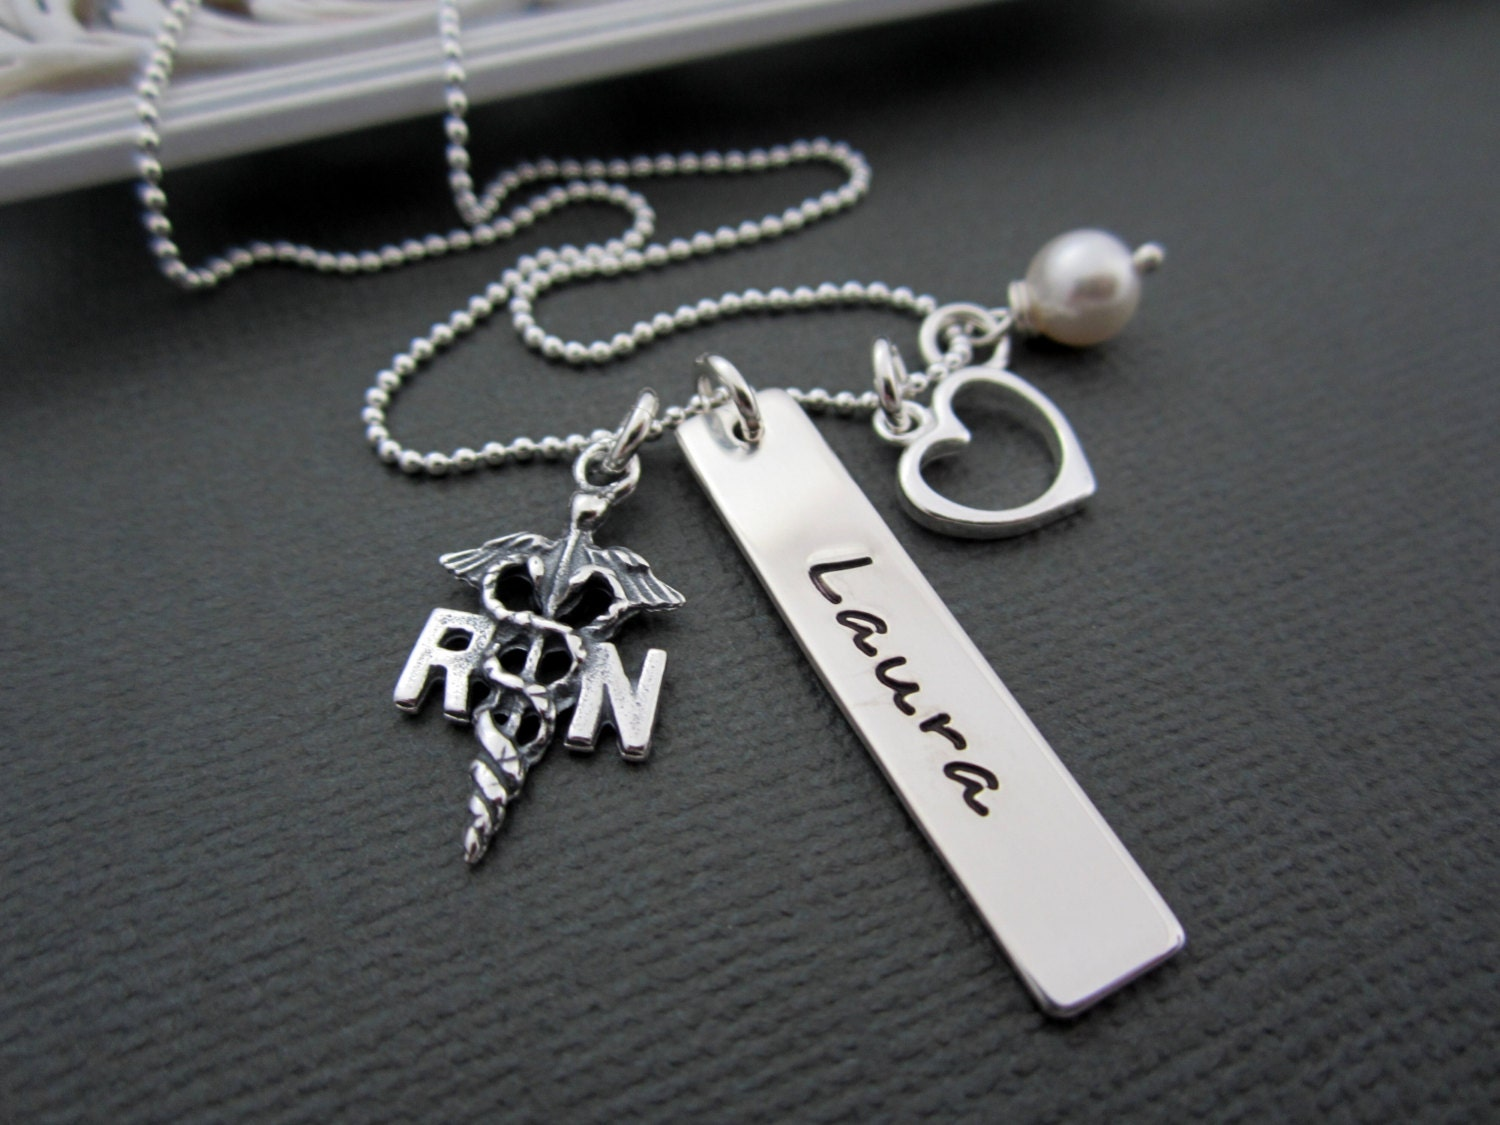 jewelry necklace rn registered by